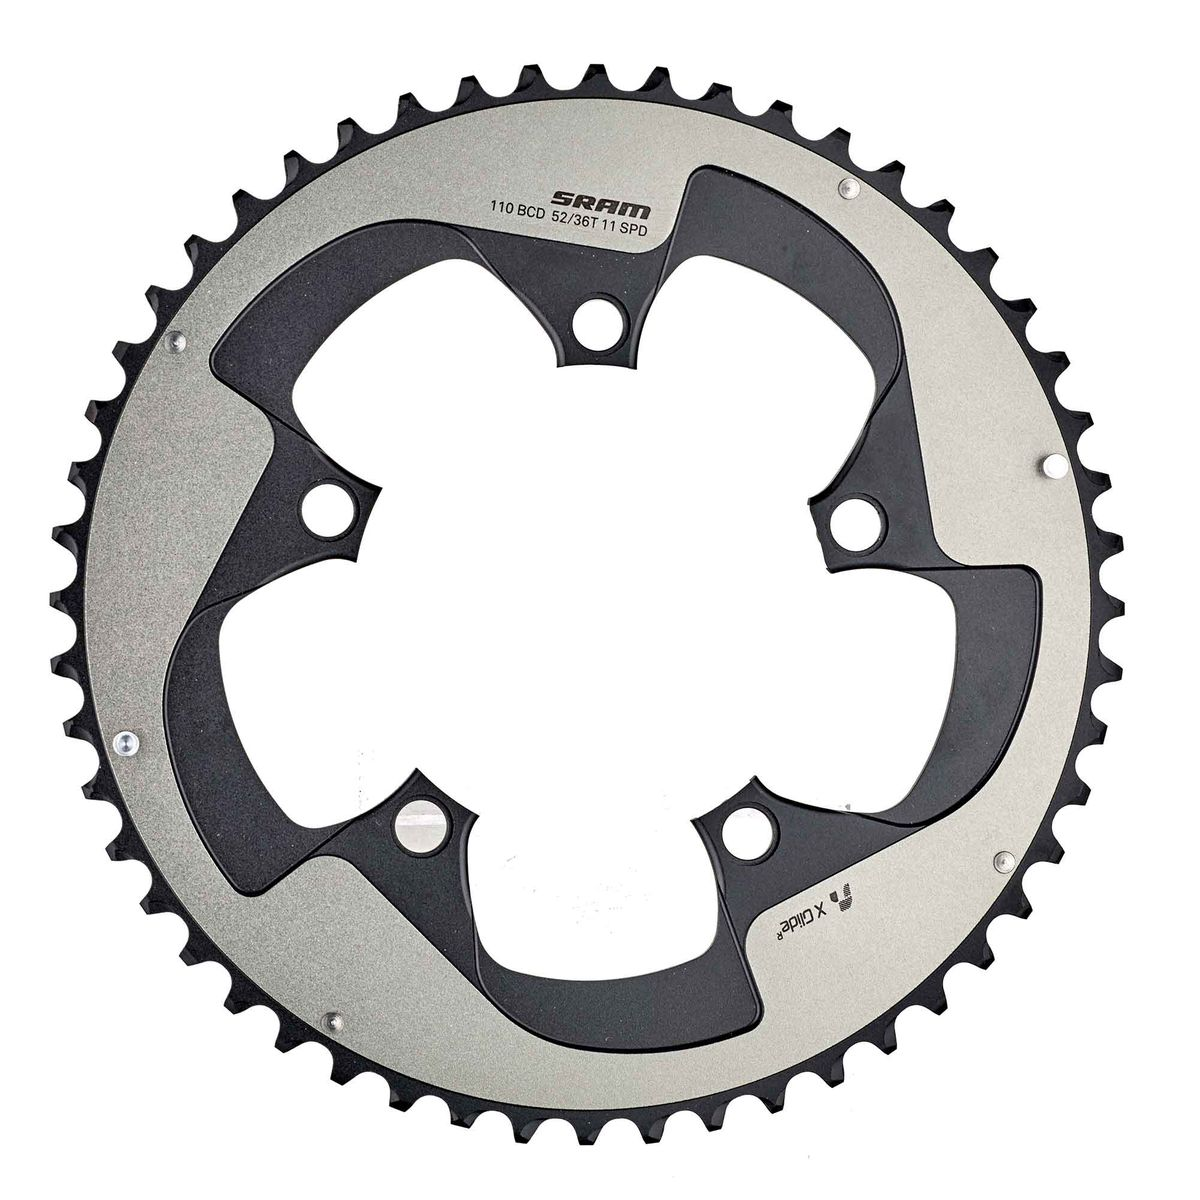 Red 22 chainring